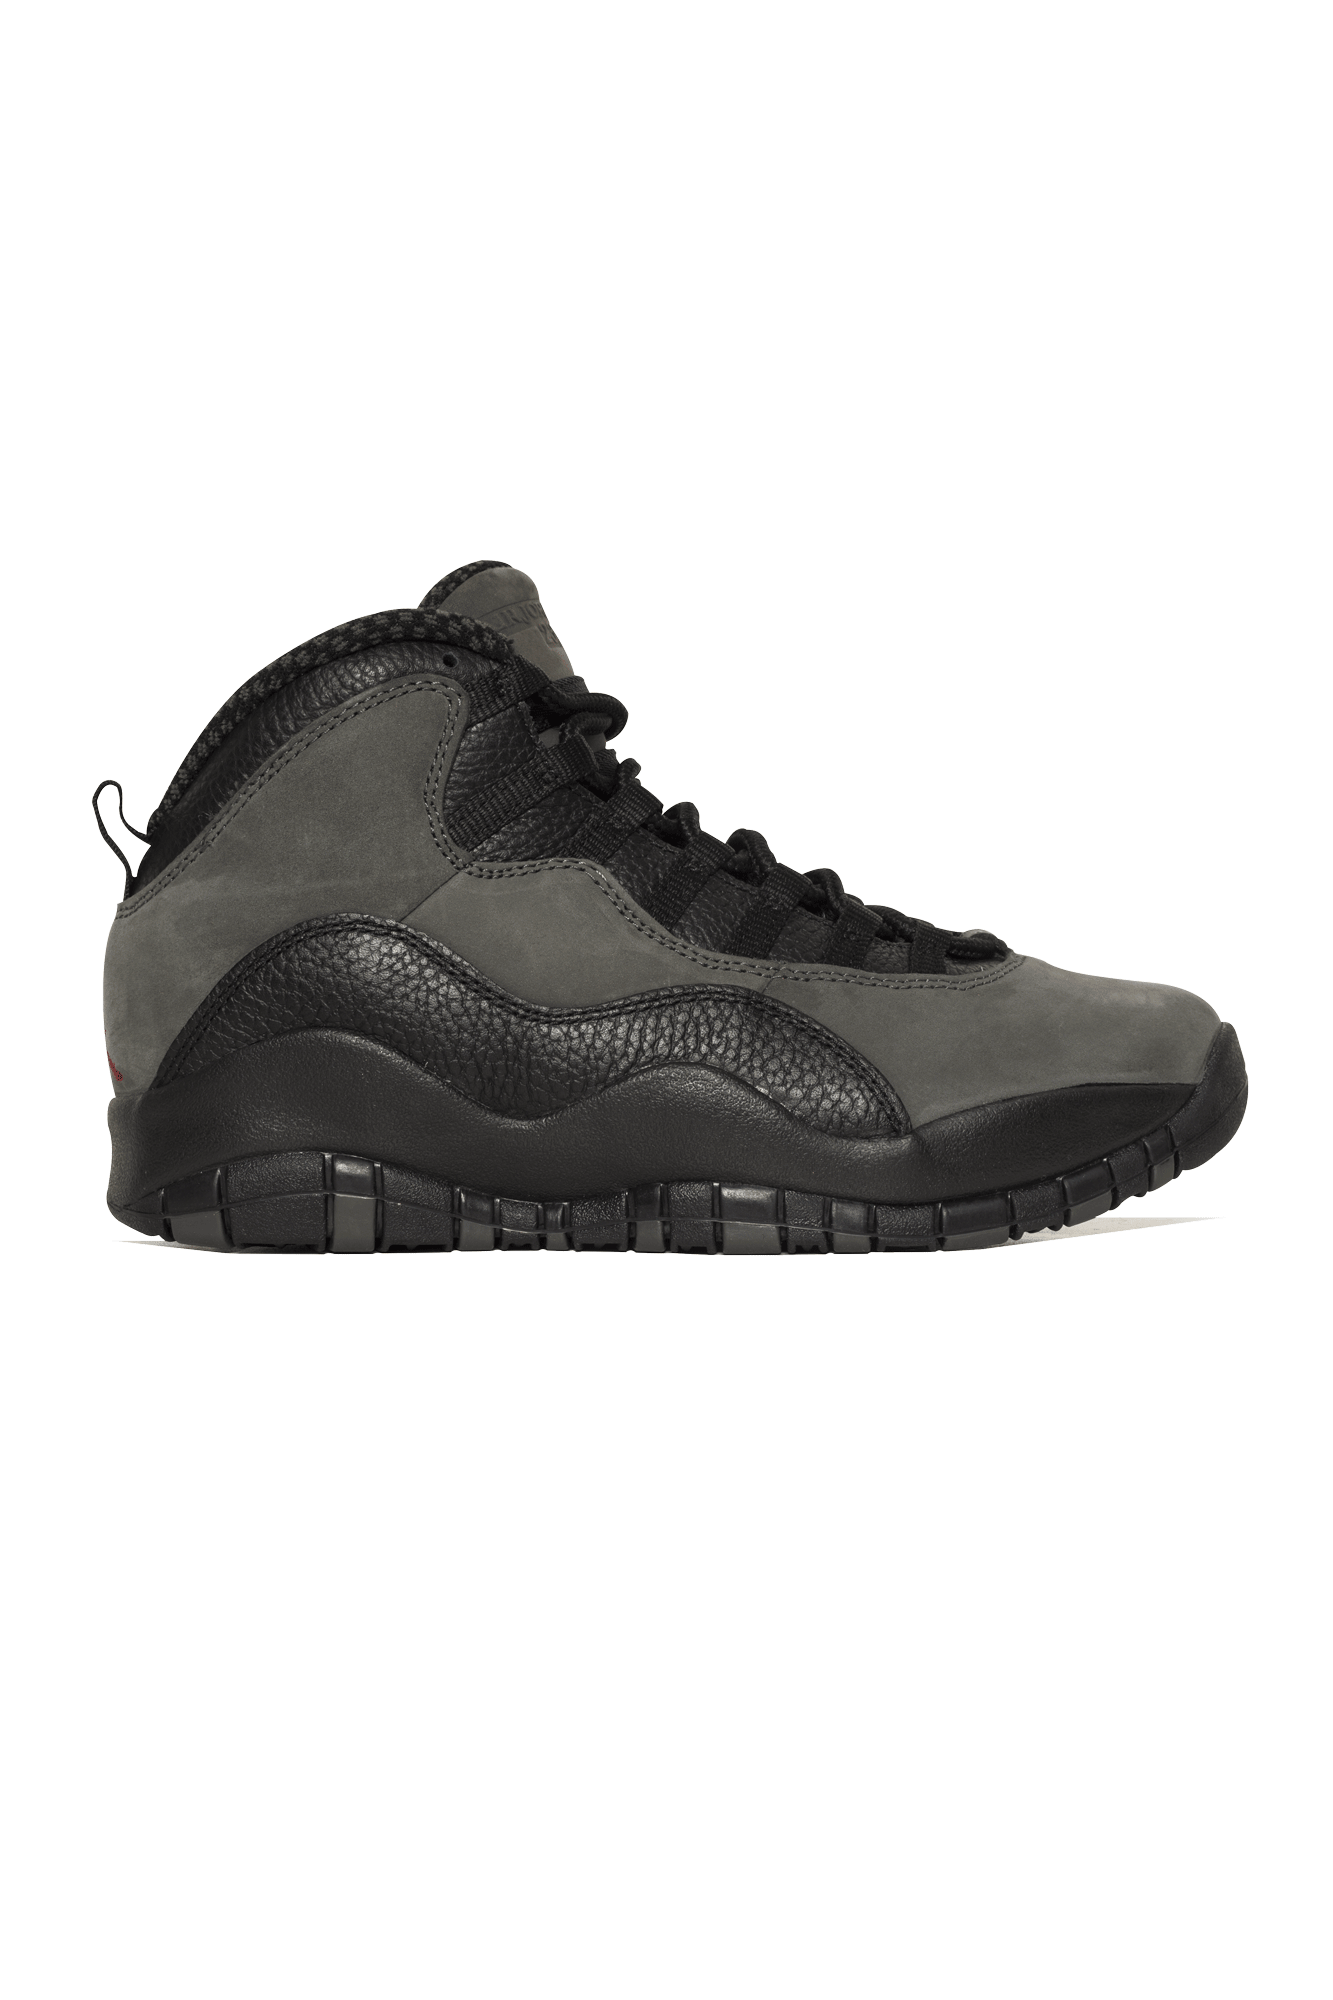 Sneakers Air Jordan 10 Retro Grey - One Block Down